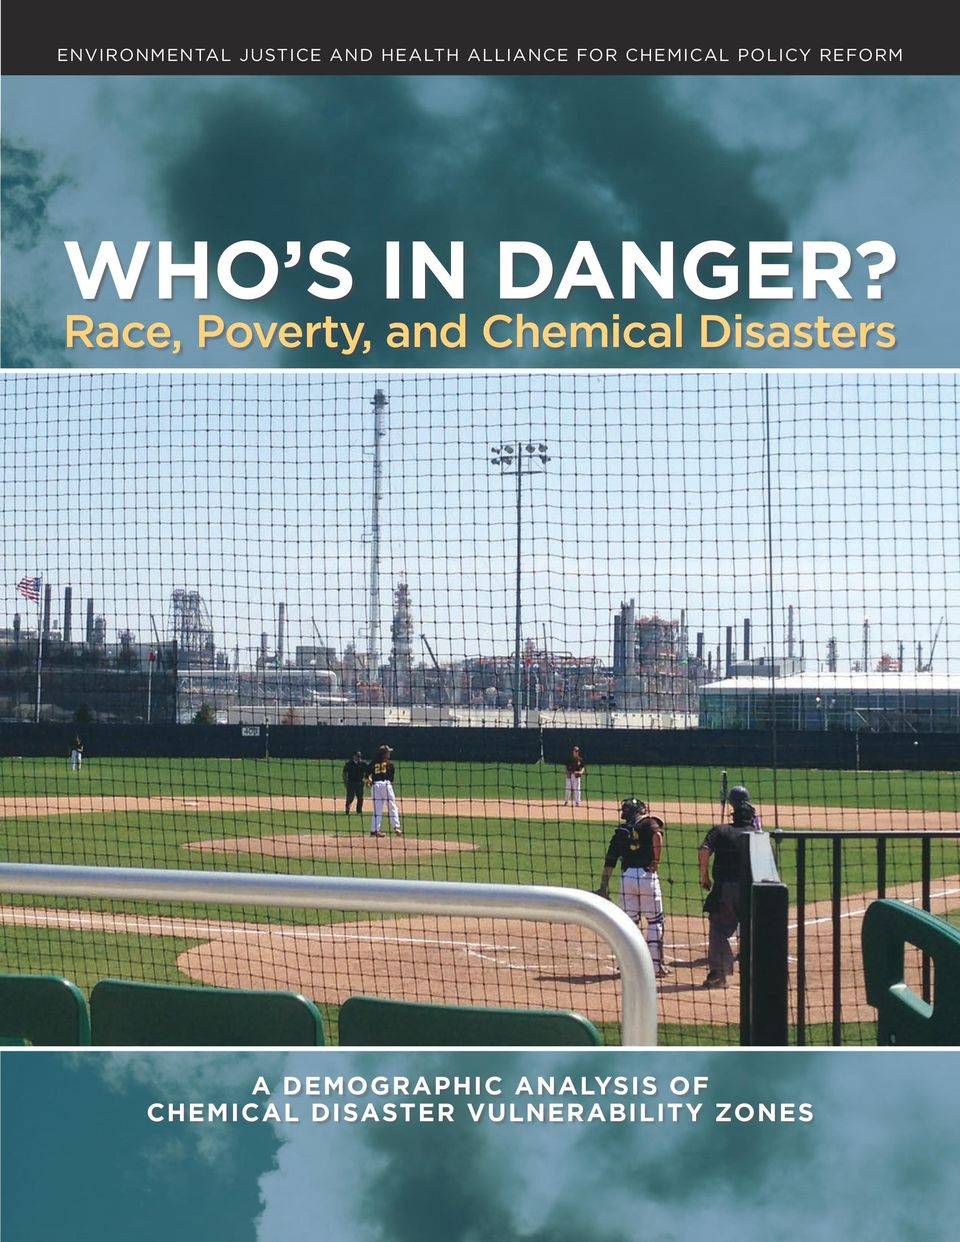 Race, Poverty, and Chemical Disasters A DEMOGRAPHIC ANALYSIS